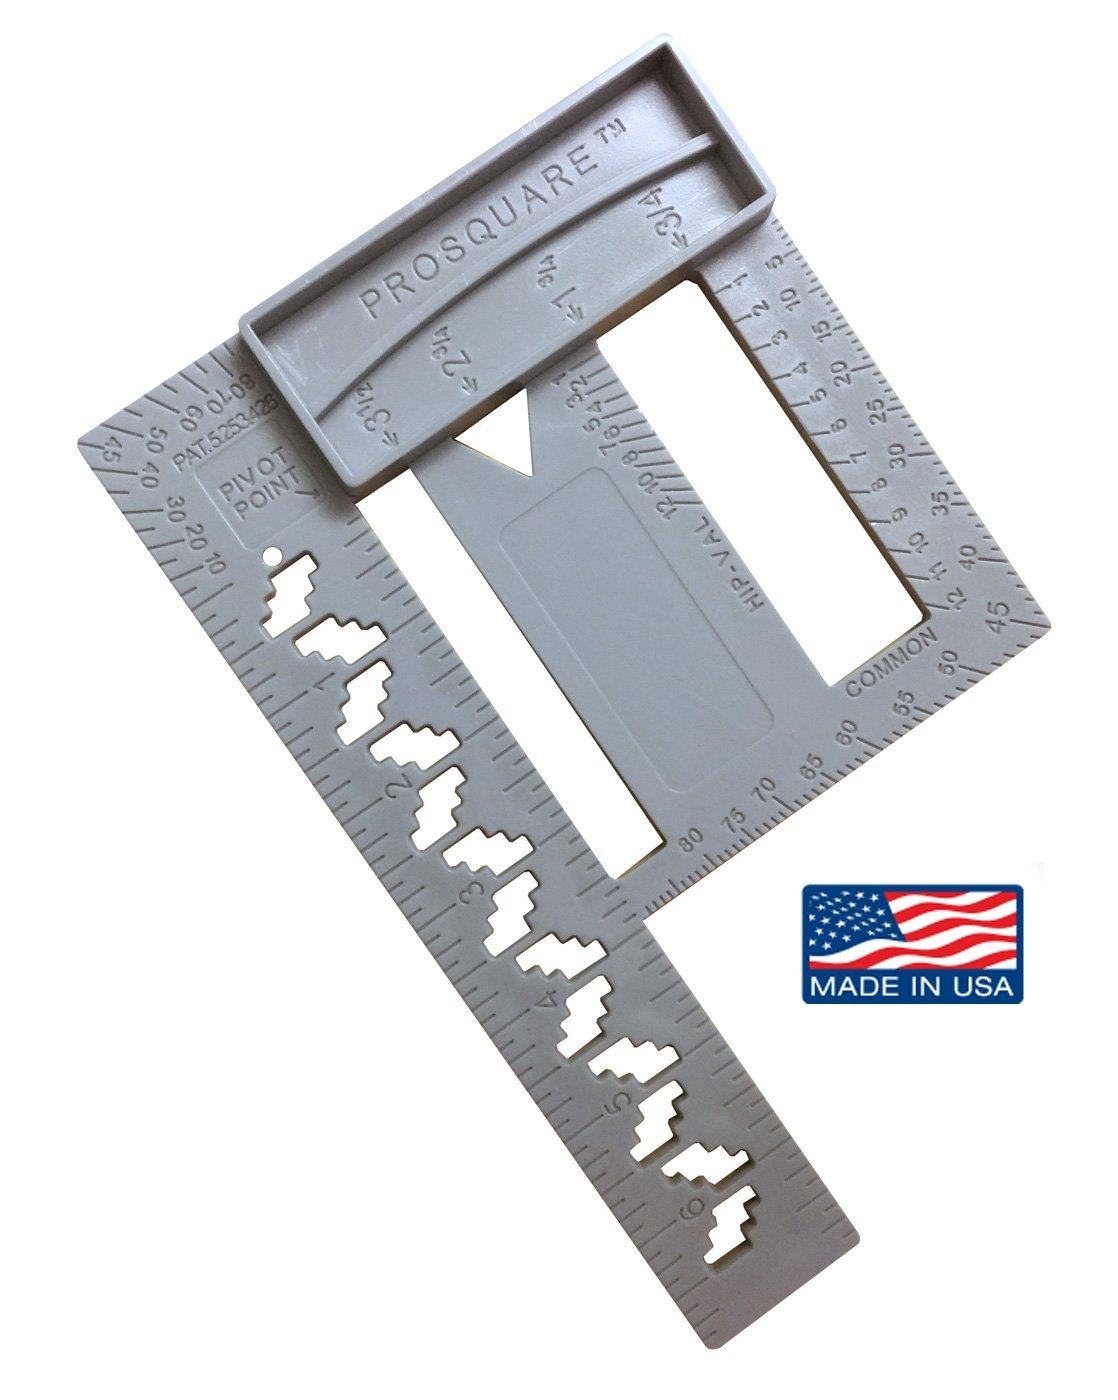 PRO SQUARE Make layout smoother cleaner and more accurate Speed Square Combo Framing Compass Plate Wall Layout for professional contractors Made in USA